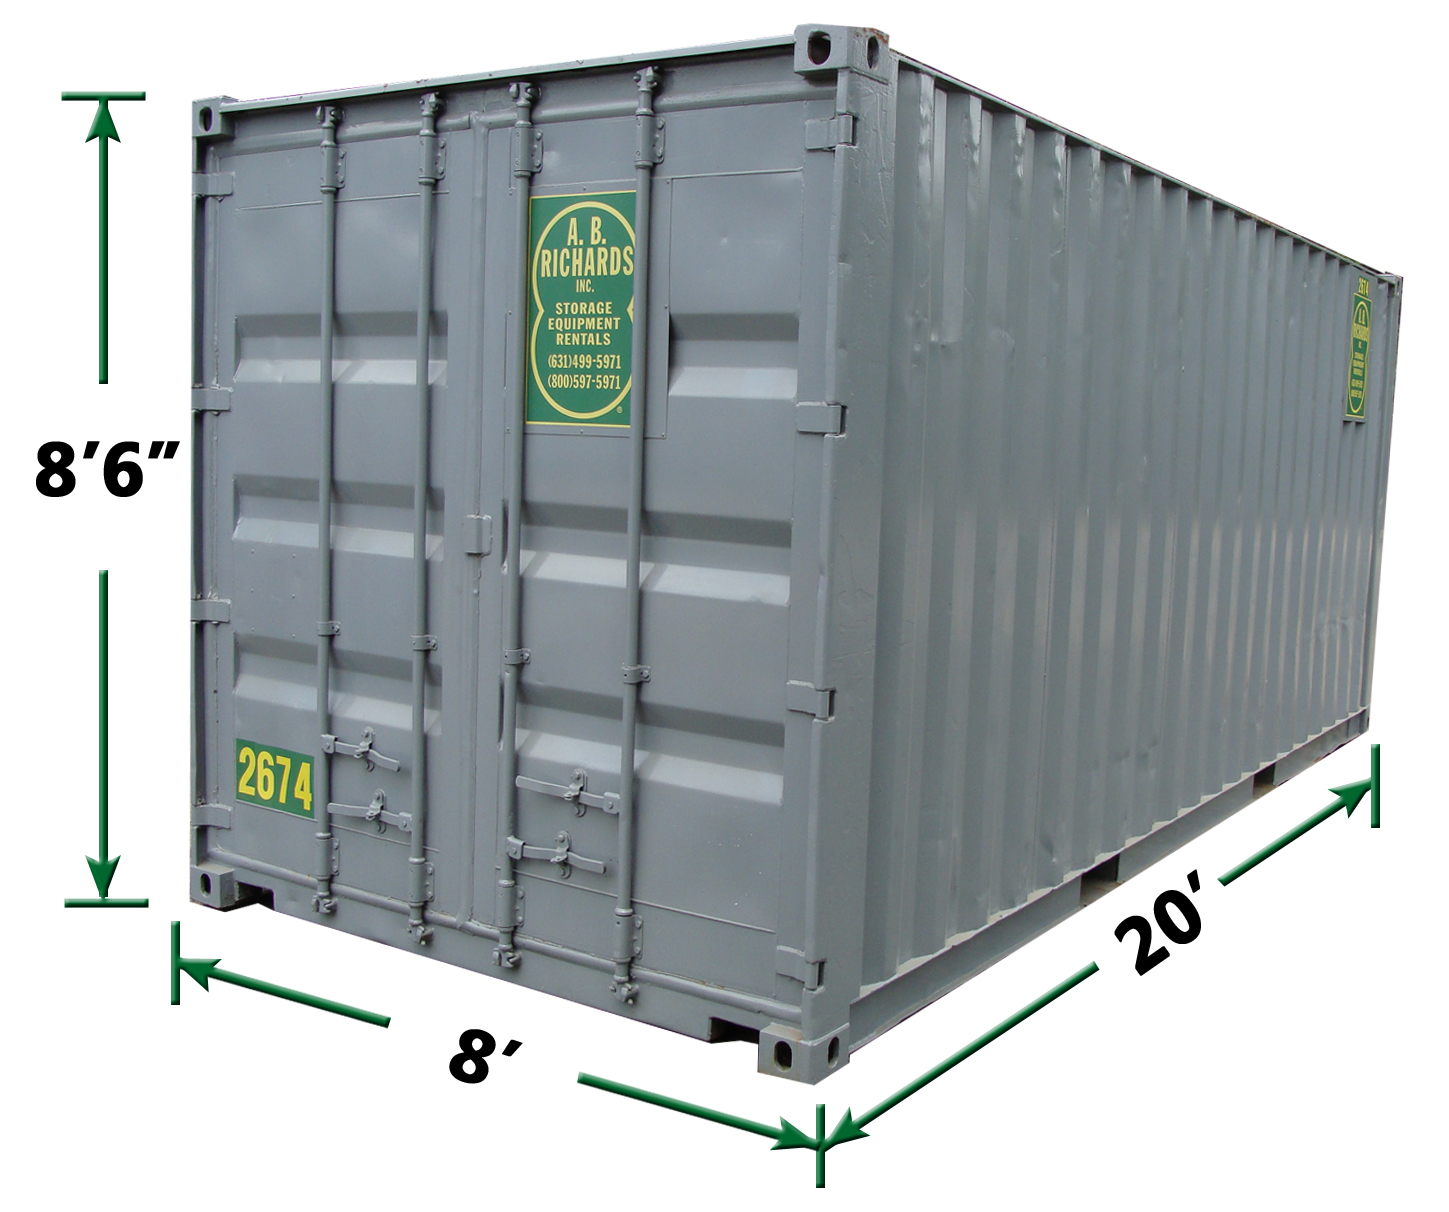 20' Construction Storage Container Rentals in NY by AB Richards